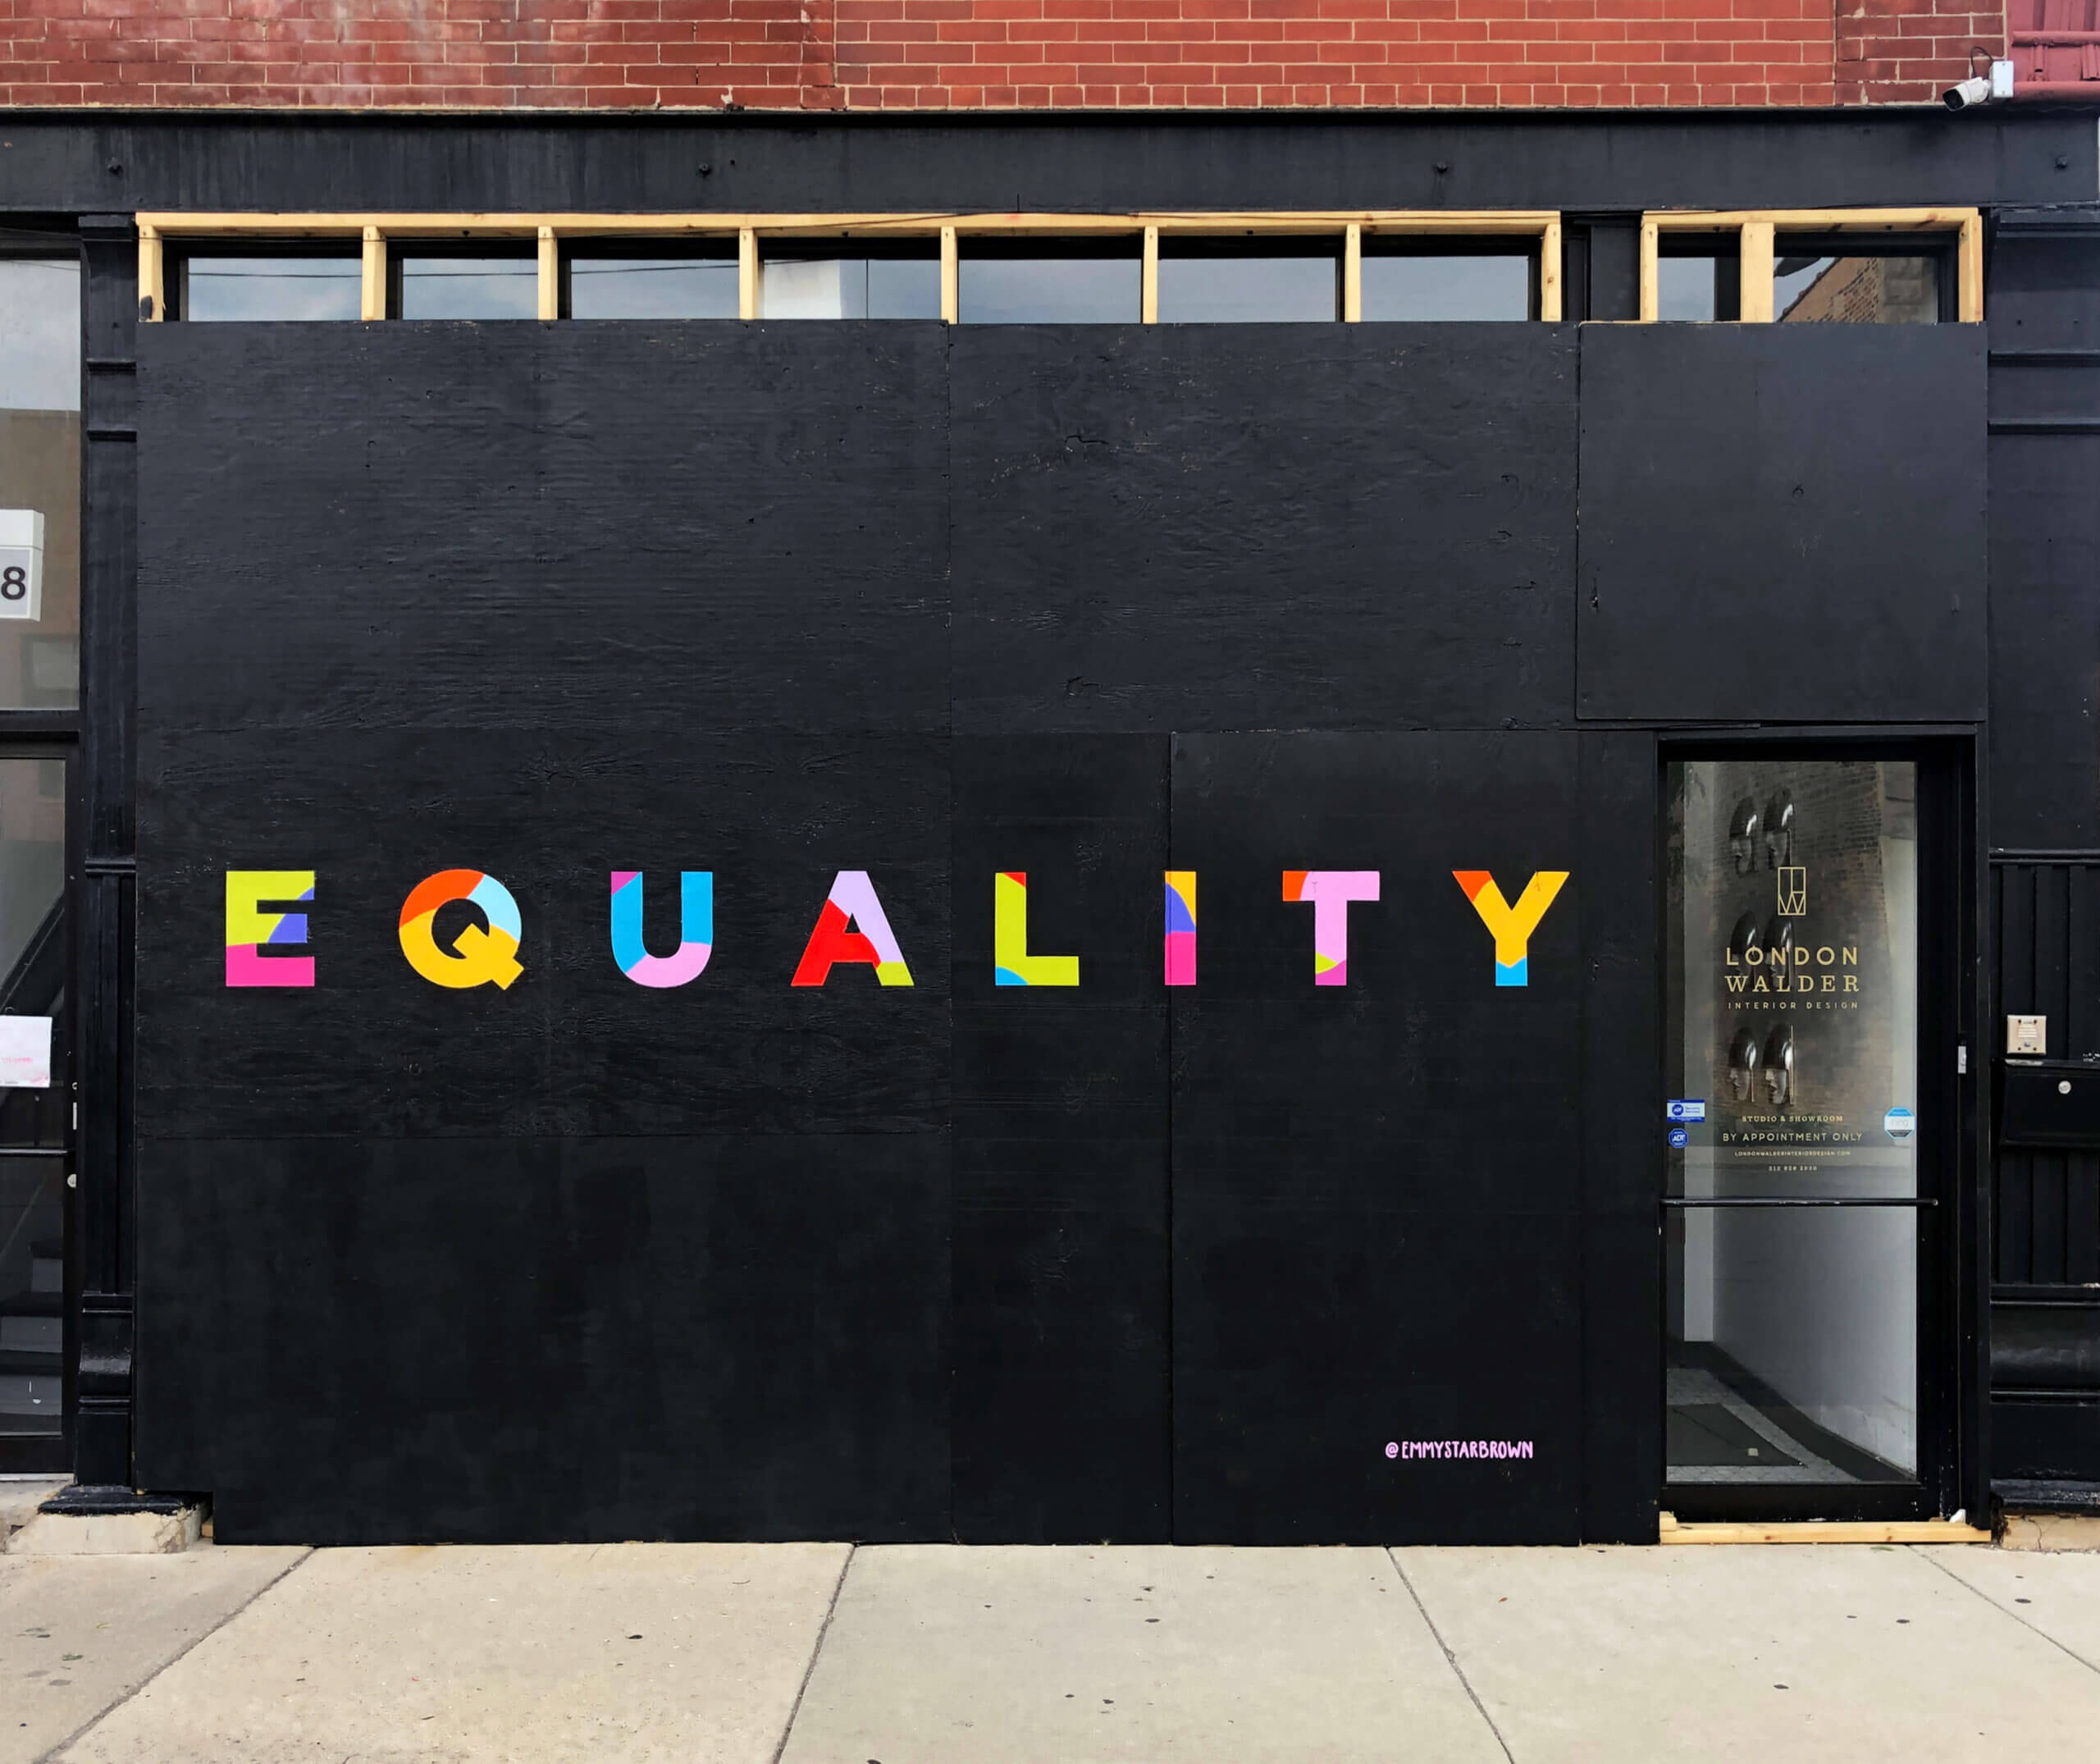 Equality Mural by Emmy Star Brown